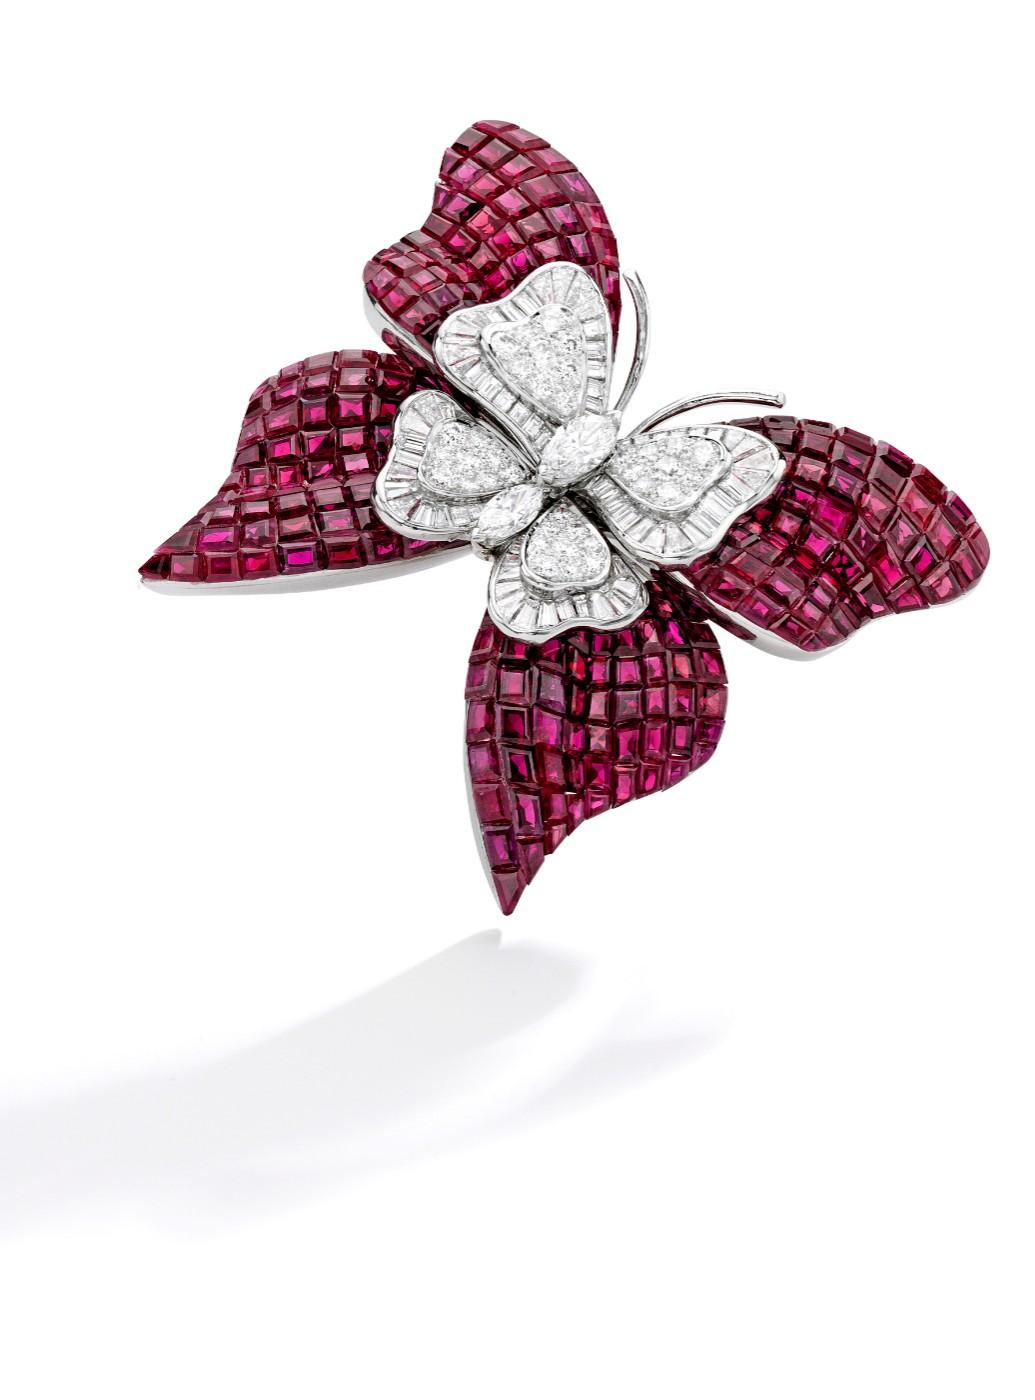 Mystery-Set Ruby and Diamond Butterfly Brooch by Van Cleef & Arpels